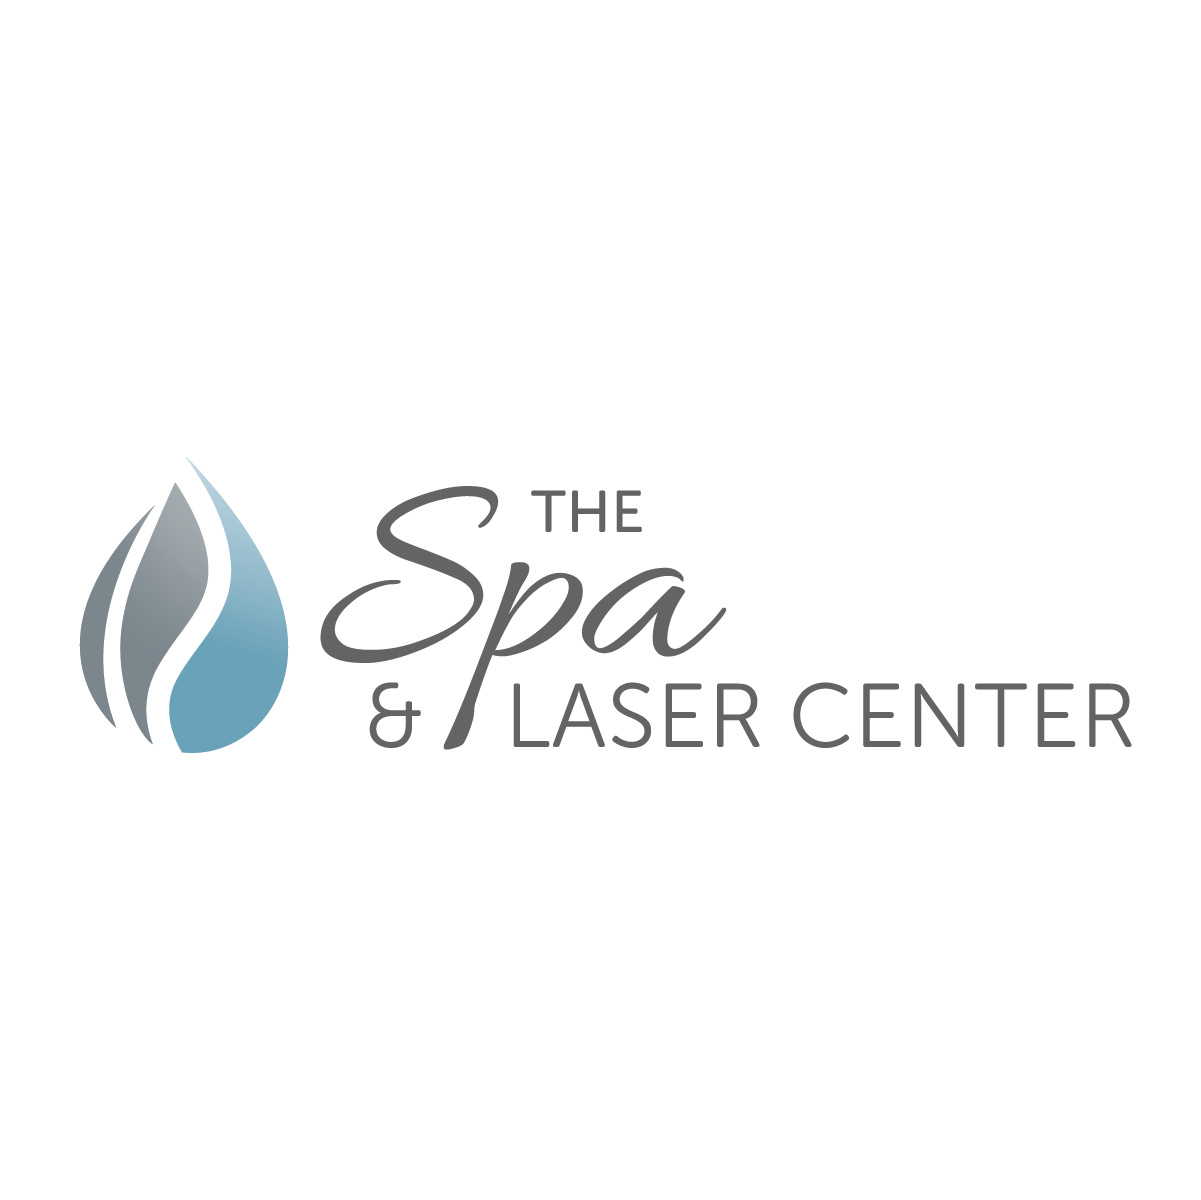 Laura_Spa & Laser Center Logo